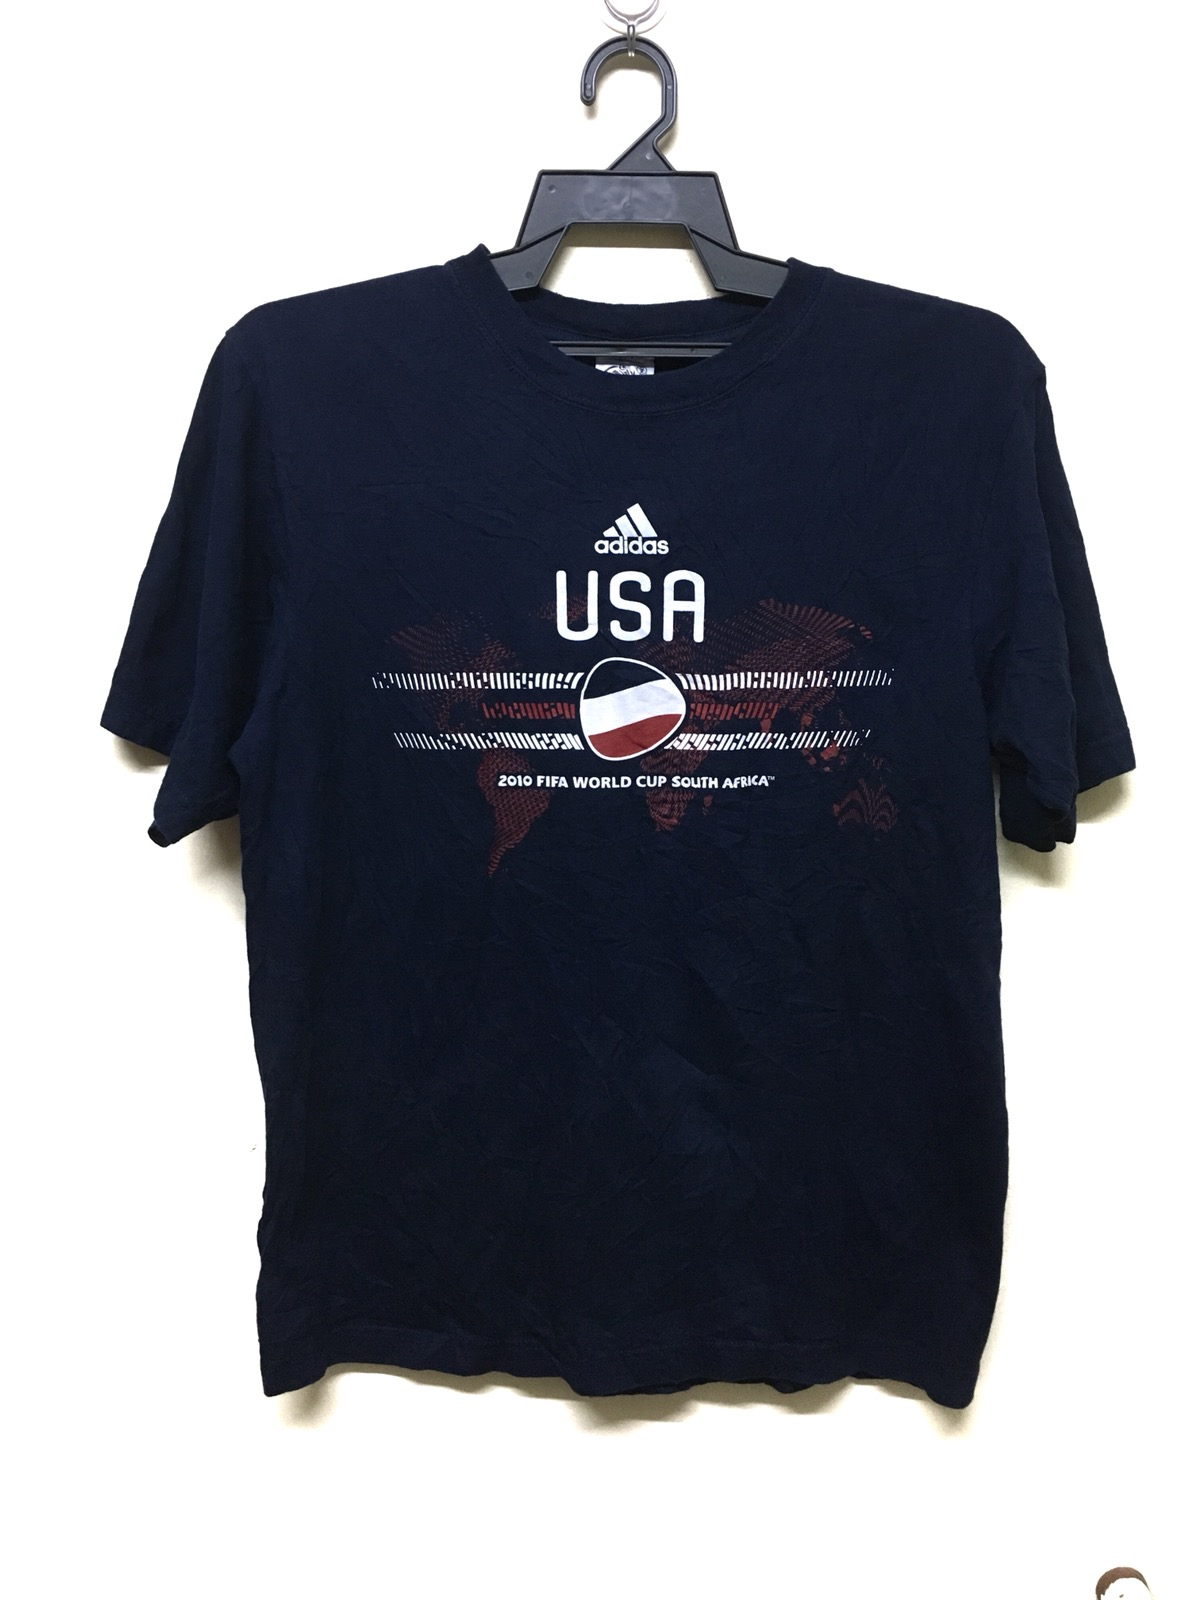 5c0db1cad Adidas South Afrika World Cup Fifa 2010 Size l - Short Sleeve T-Shirts for  Sale - Grailed